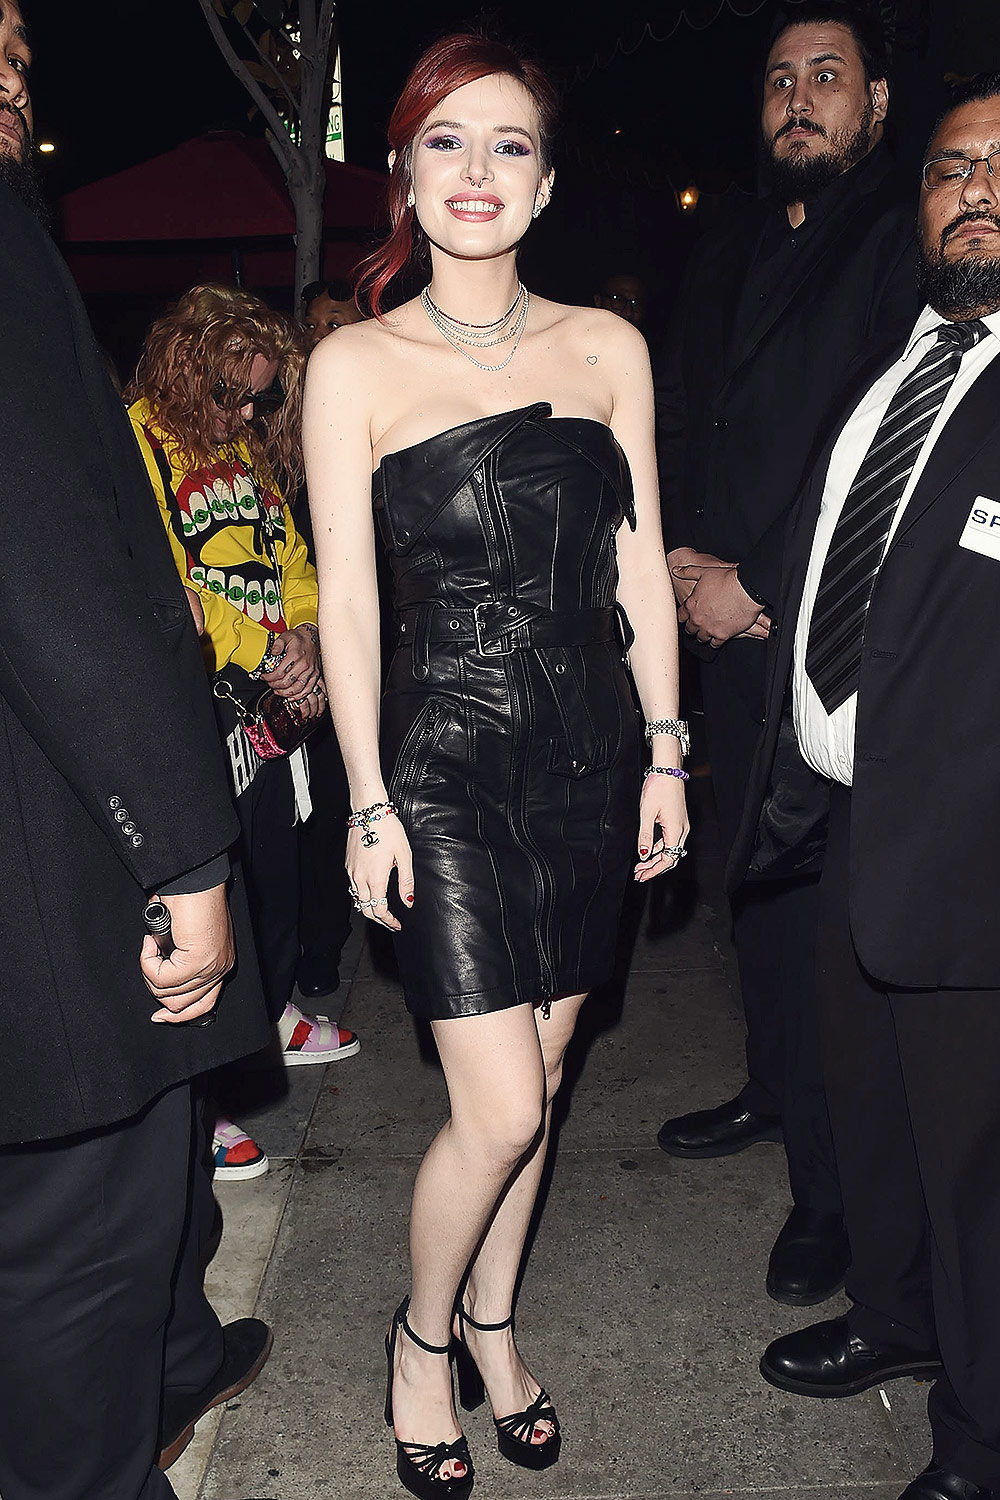 Bella Thorne was spotted arriving at Avenue nightclub